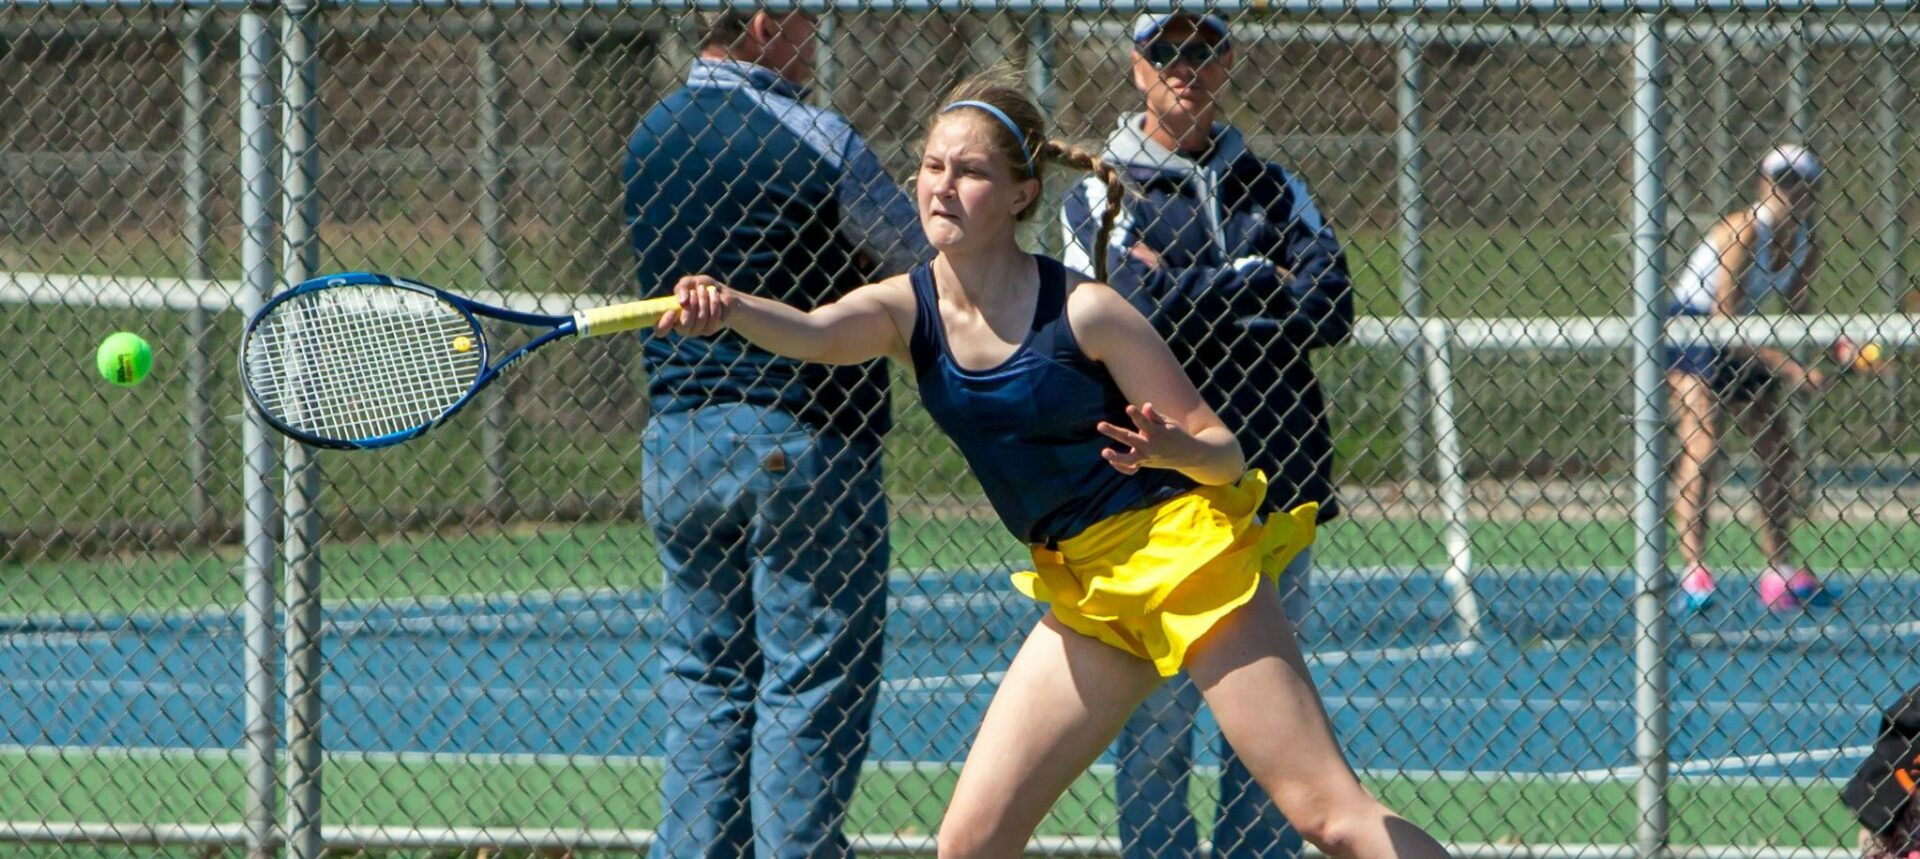 North Muskegon girls tennis team, ranked No. 2 in the state, wants to maintain local supremacy at Saturday's city tournament